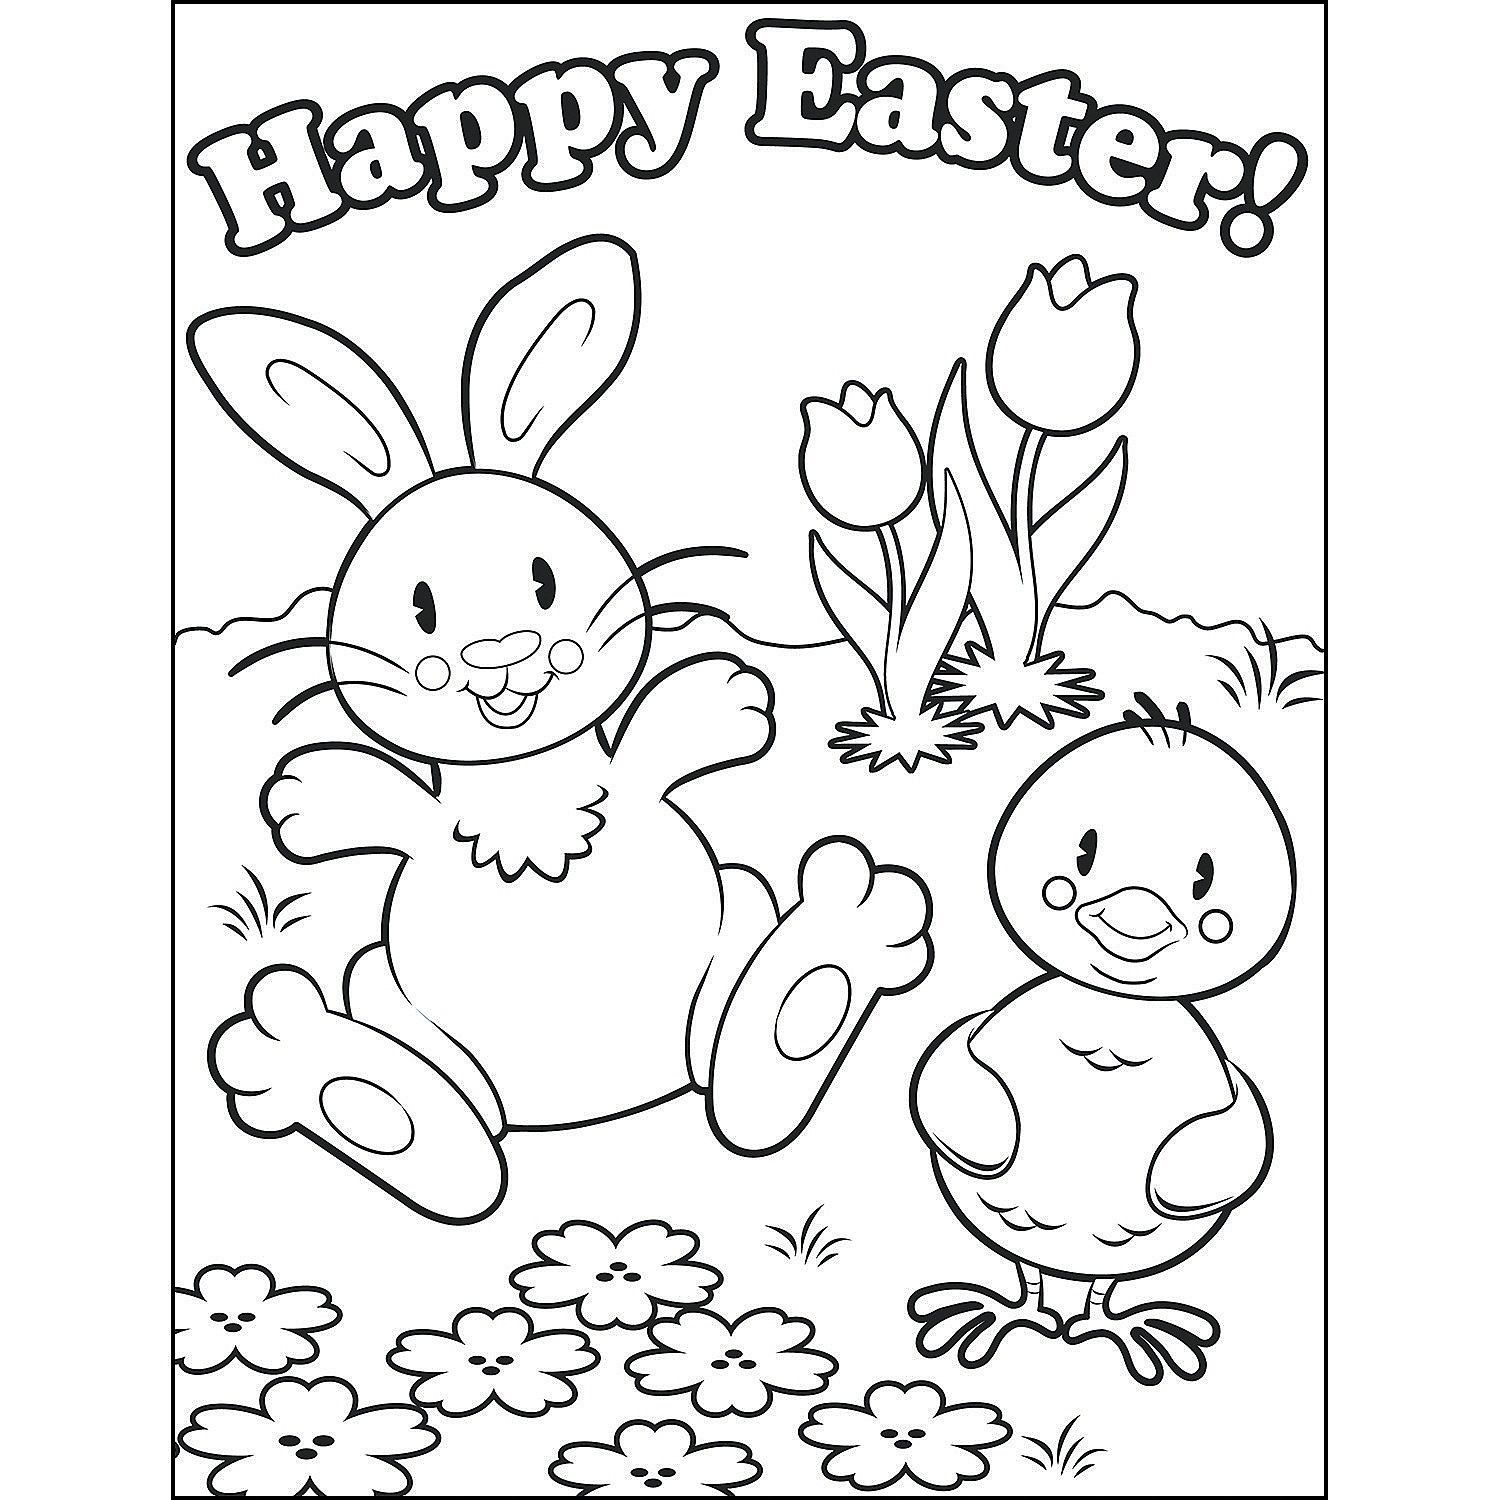 coloring book pages for easter - photo#42